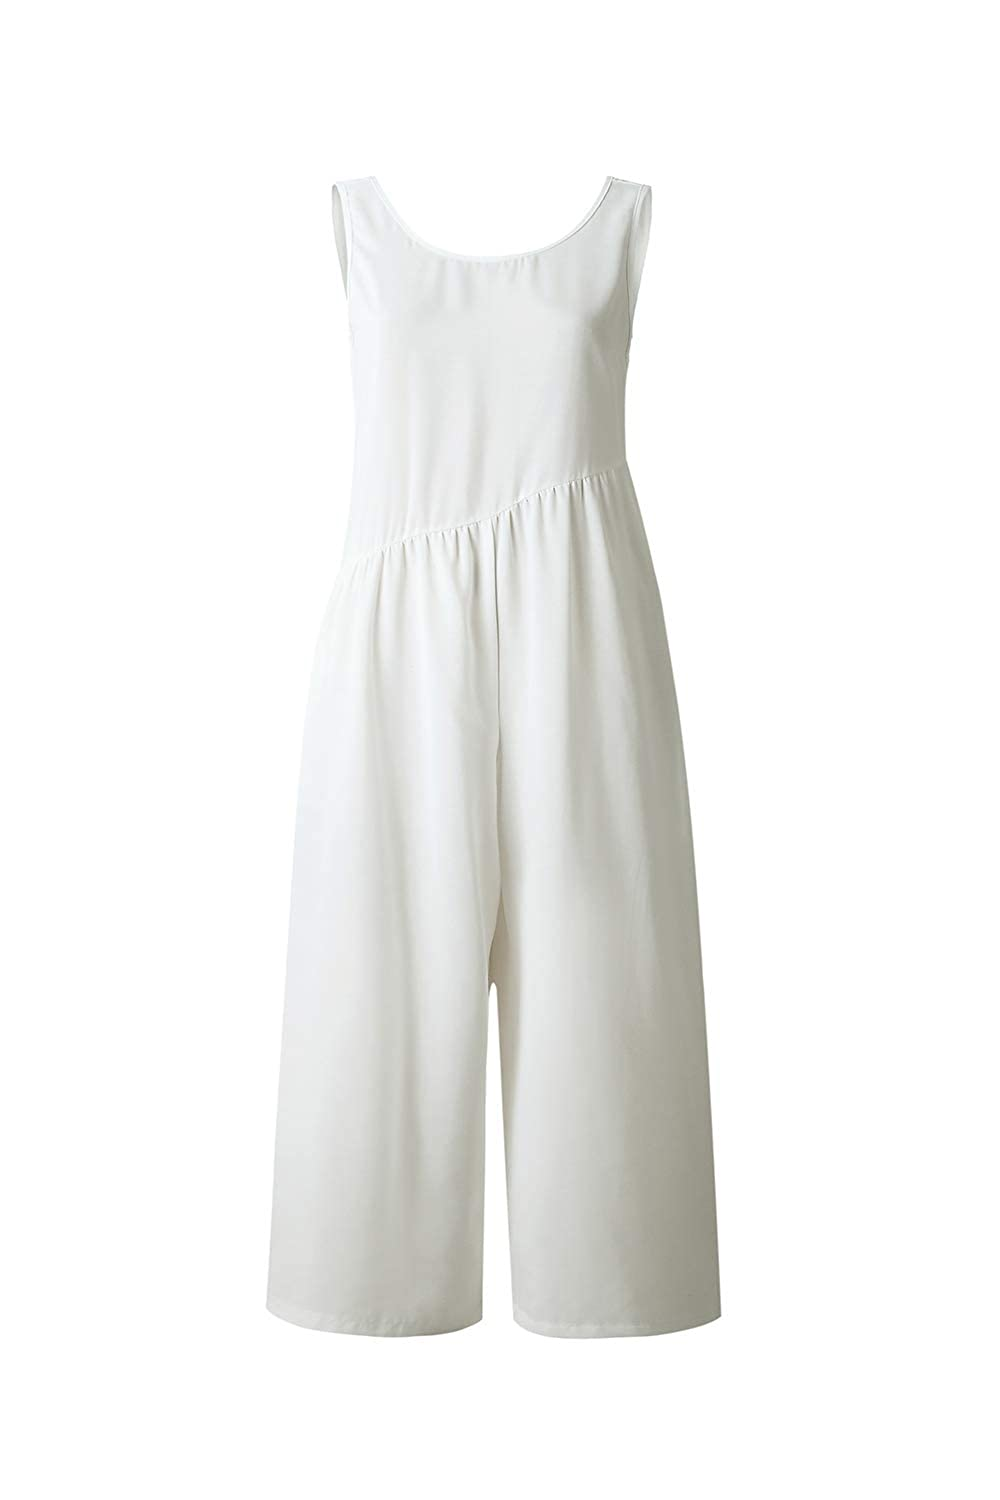 Empezars Women Casual Jumpsuits Sleeveless Long Wide Leg Romper with Pockets